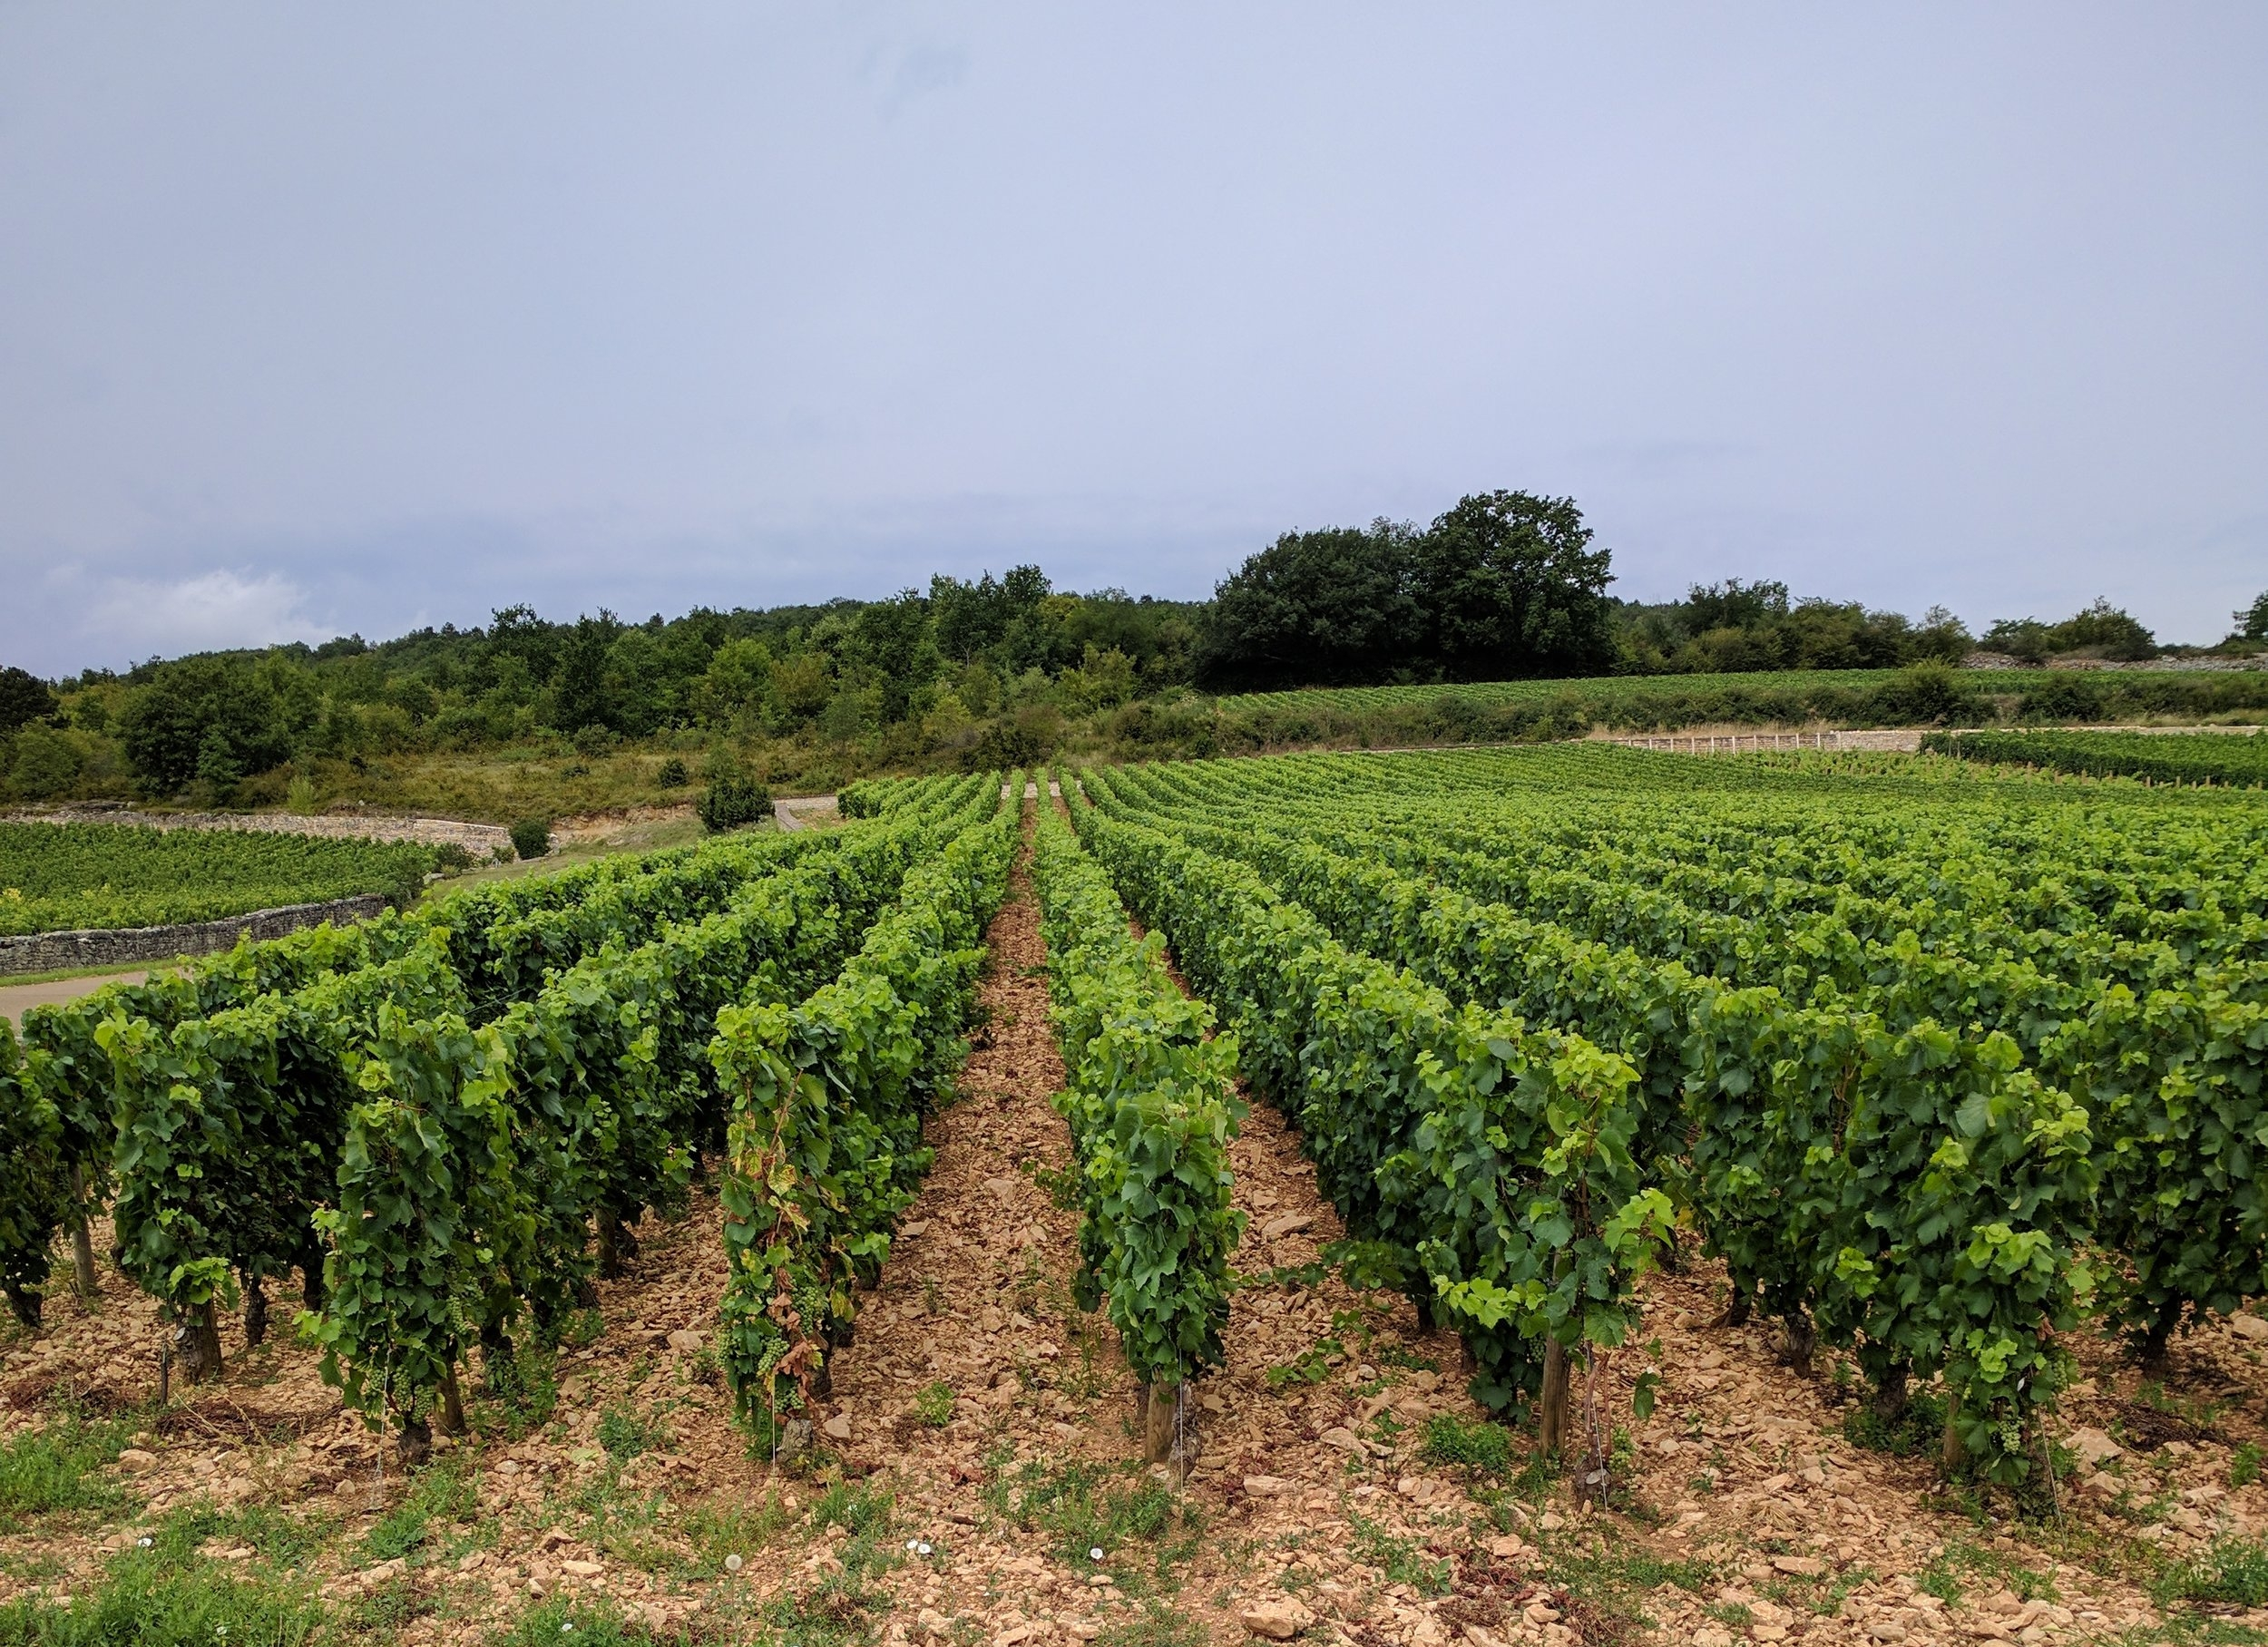 - ...versus the perfectly manicured, trellised vines throughout the rest of Burgundy.